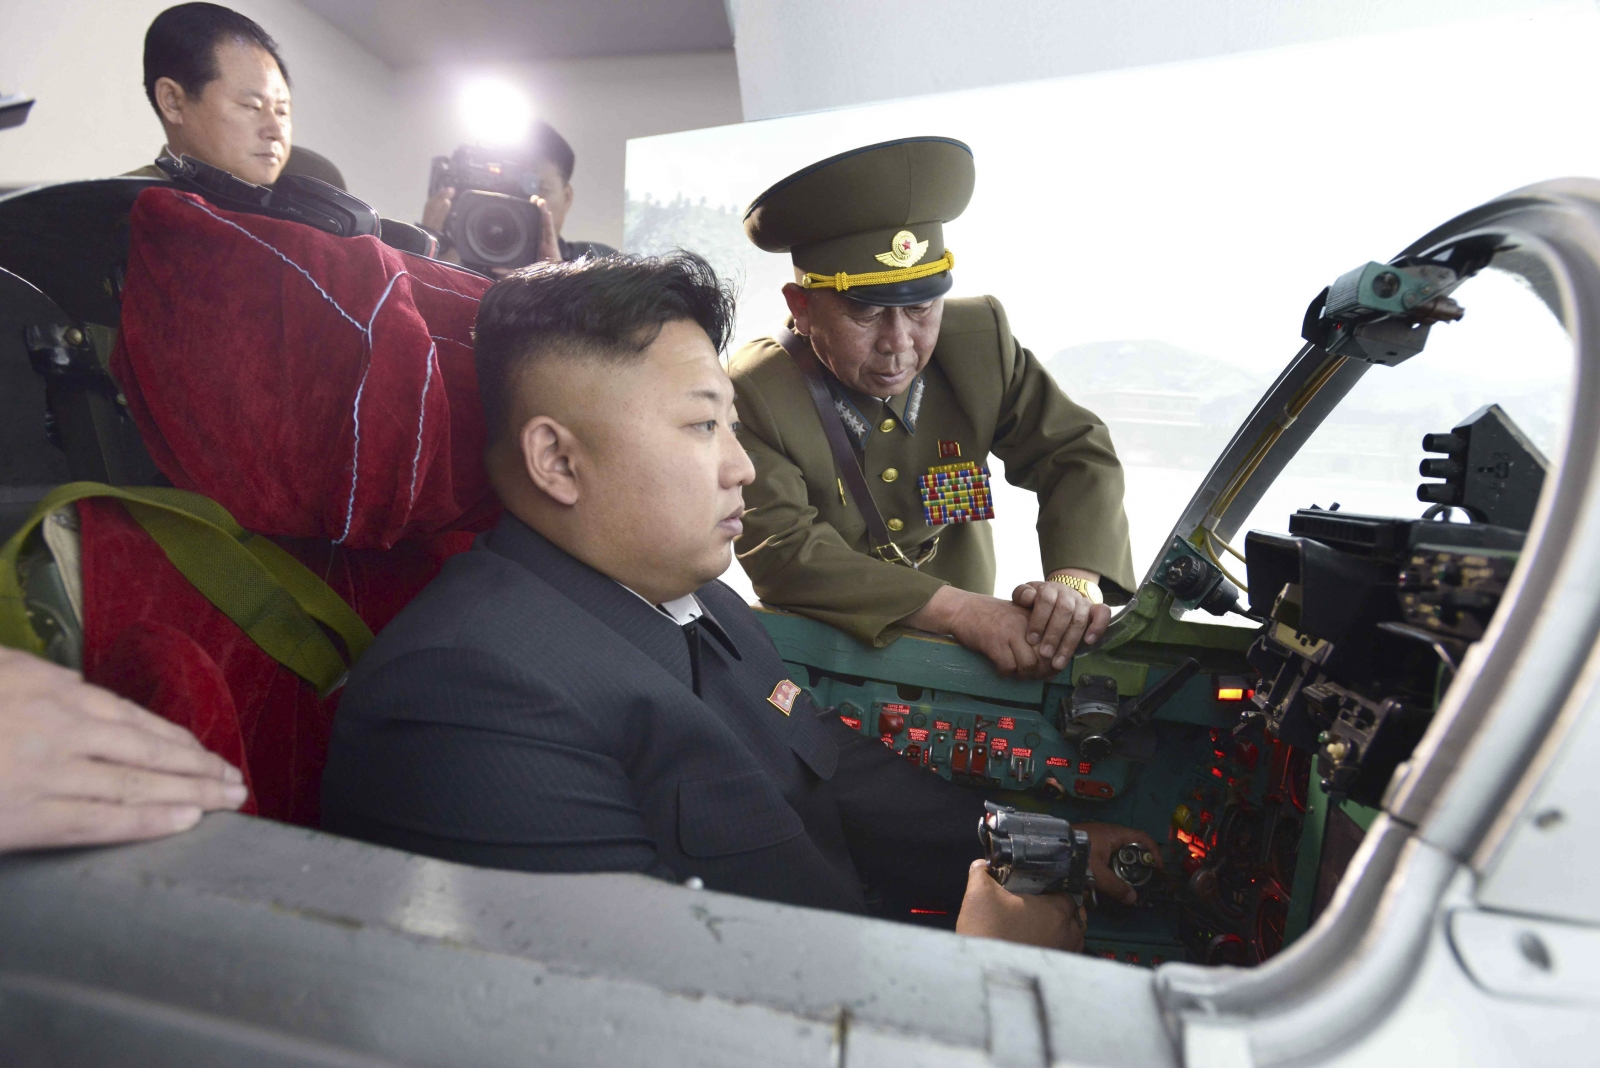 Kim jong-un's North Korea has threatened